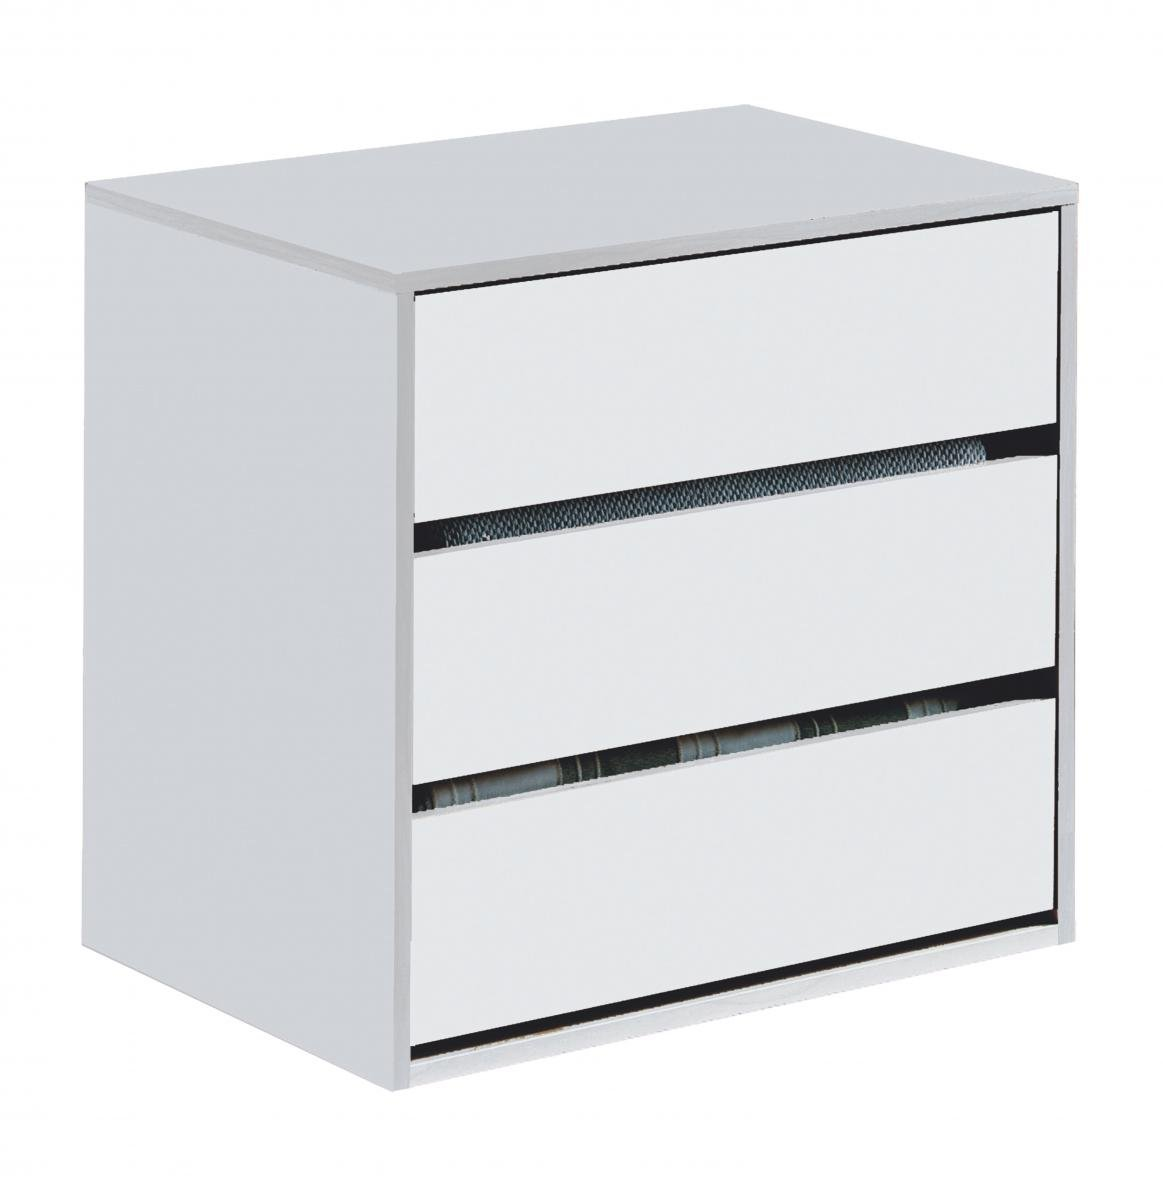 Cheap Arctic Drawer Unit 3 Drawer High Shine White for your Bedroom